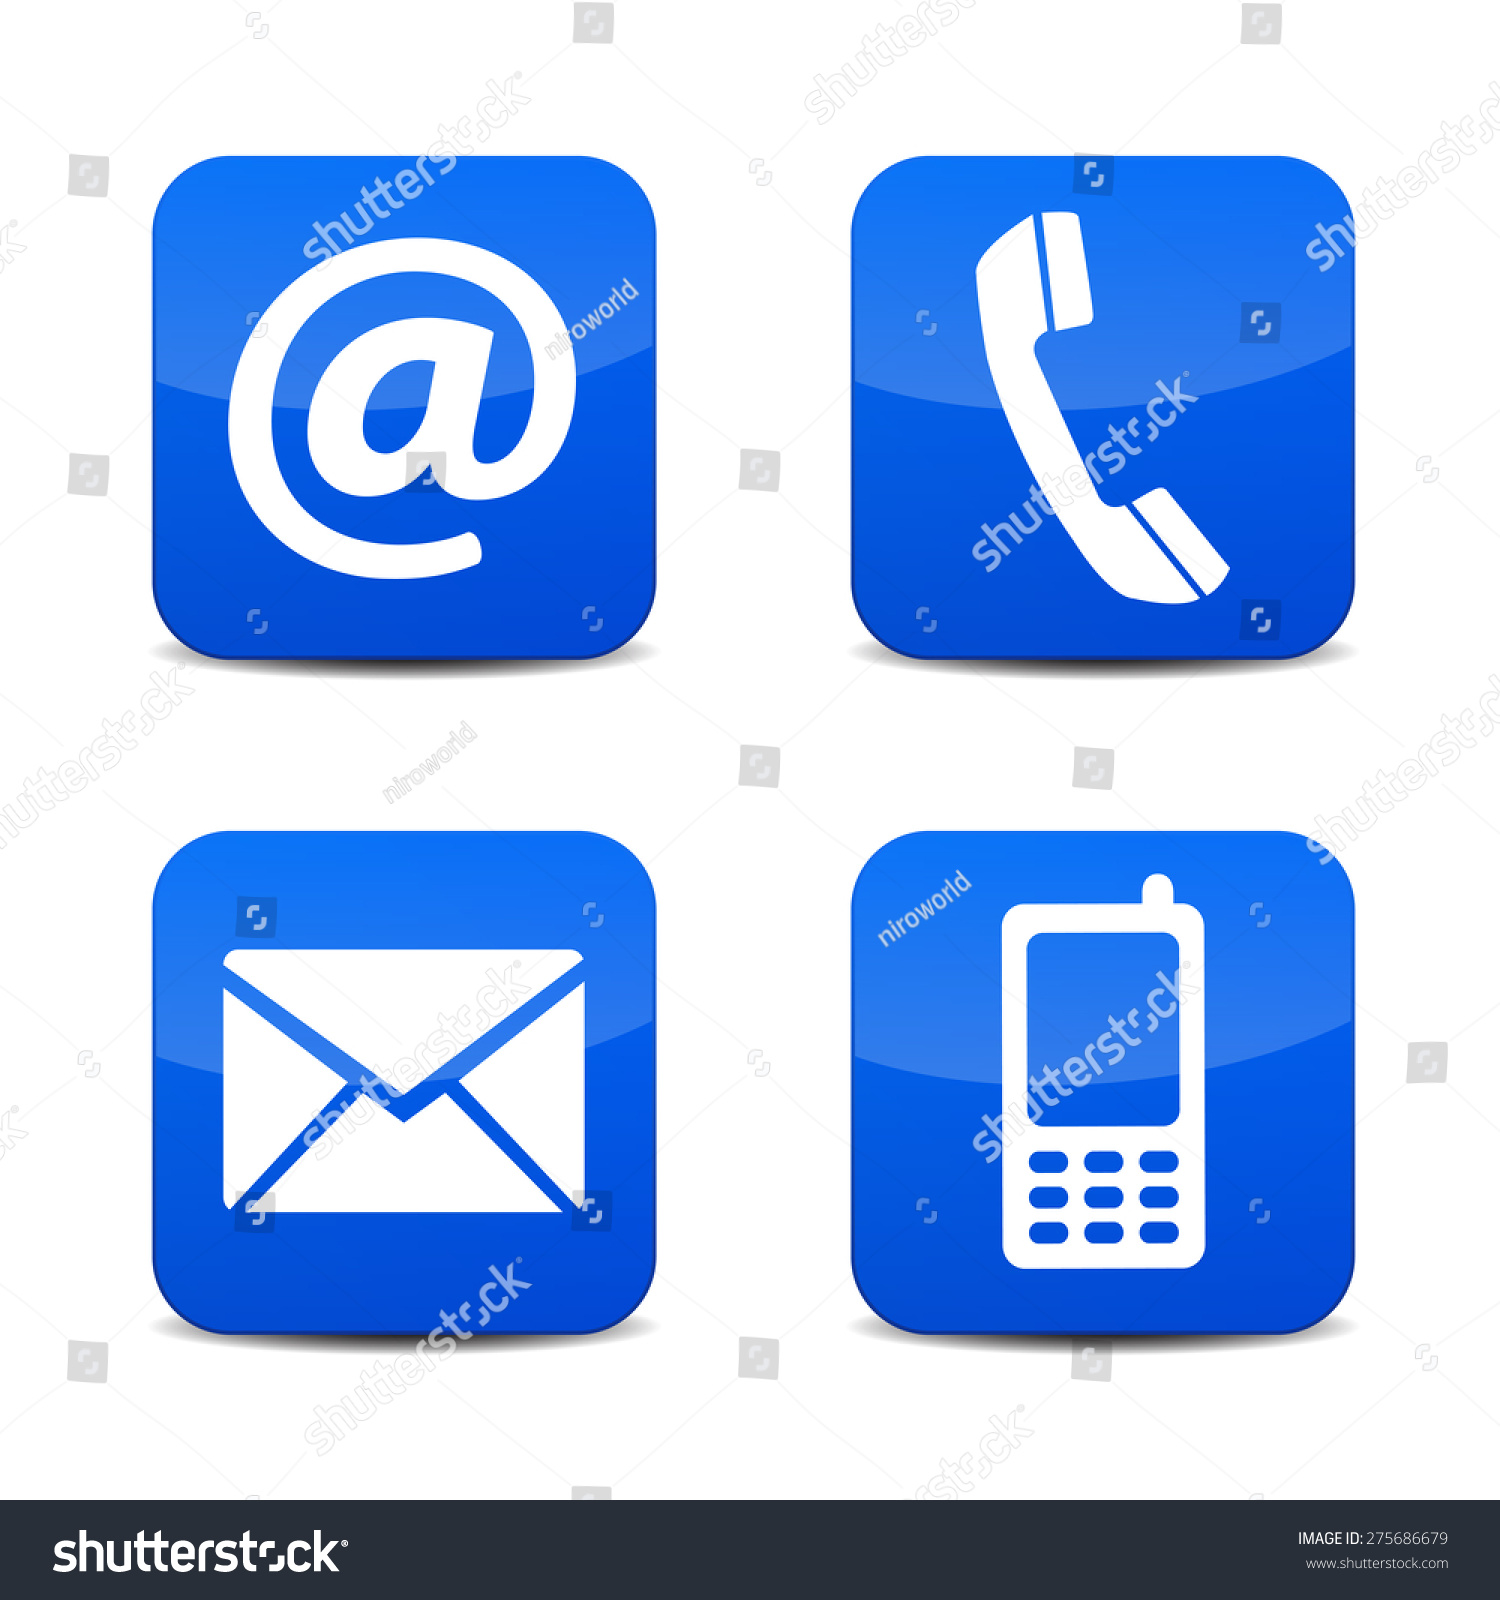 Web Contact Us Icons Telephone Email Stock Vector ...